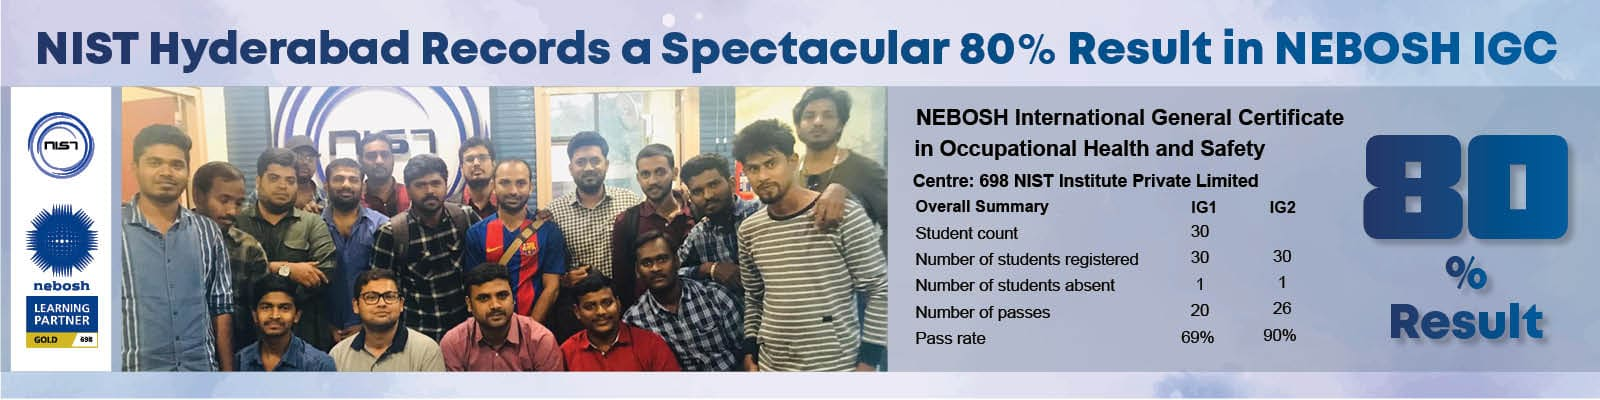 nist-hyderabad-records-a-remarkable-result-of-80-achieved-in-nebosh-igc